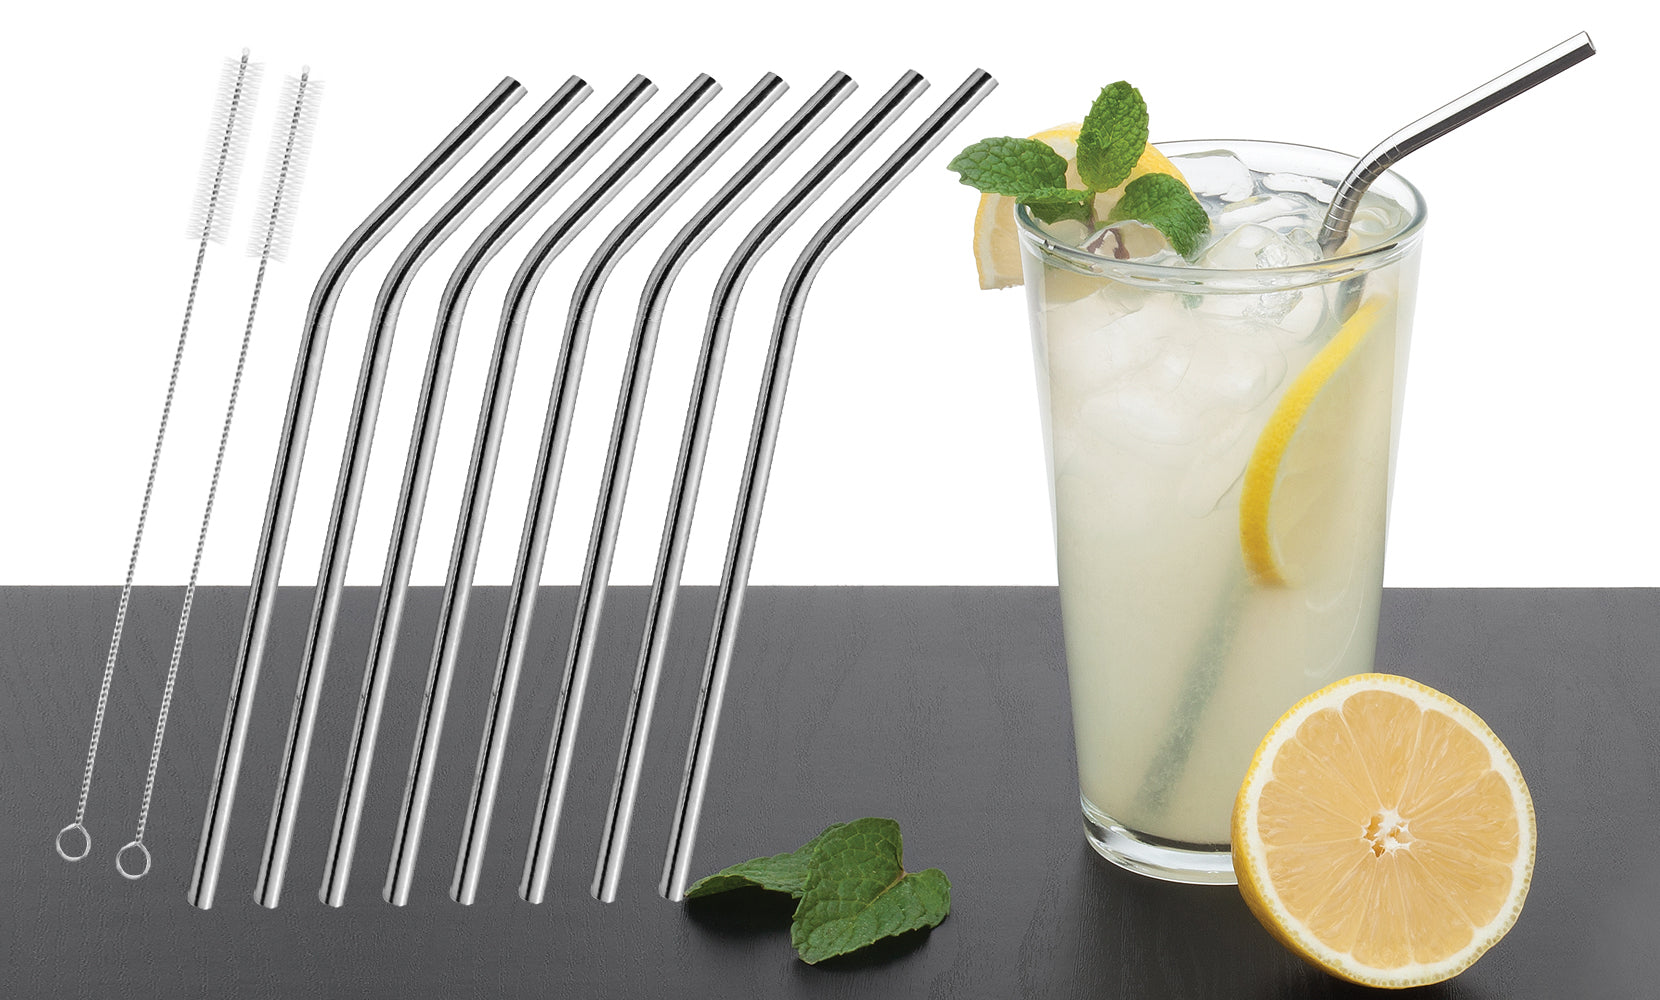 Stainless Steel Bent or Straight Drinking Straws (5- or 10-Pack)